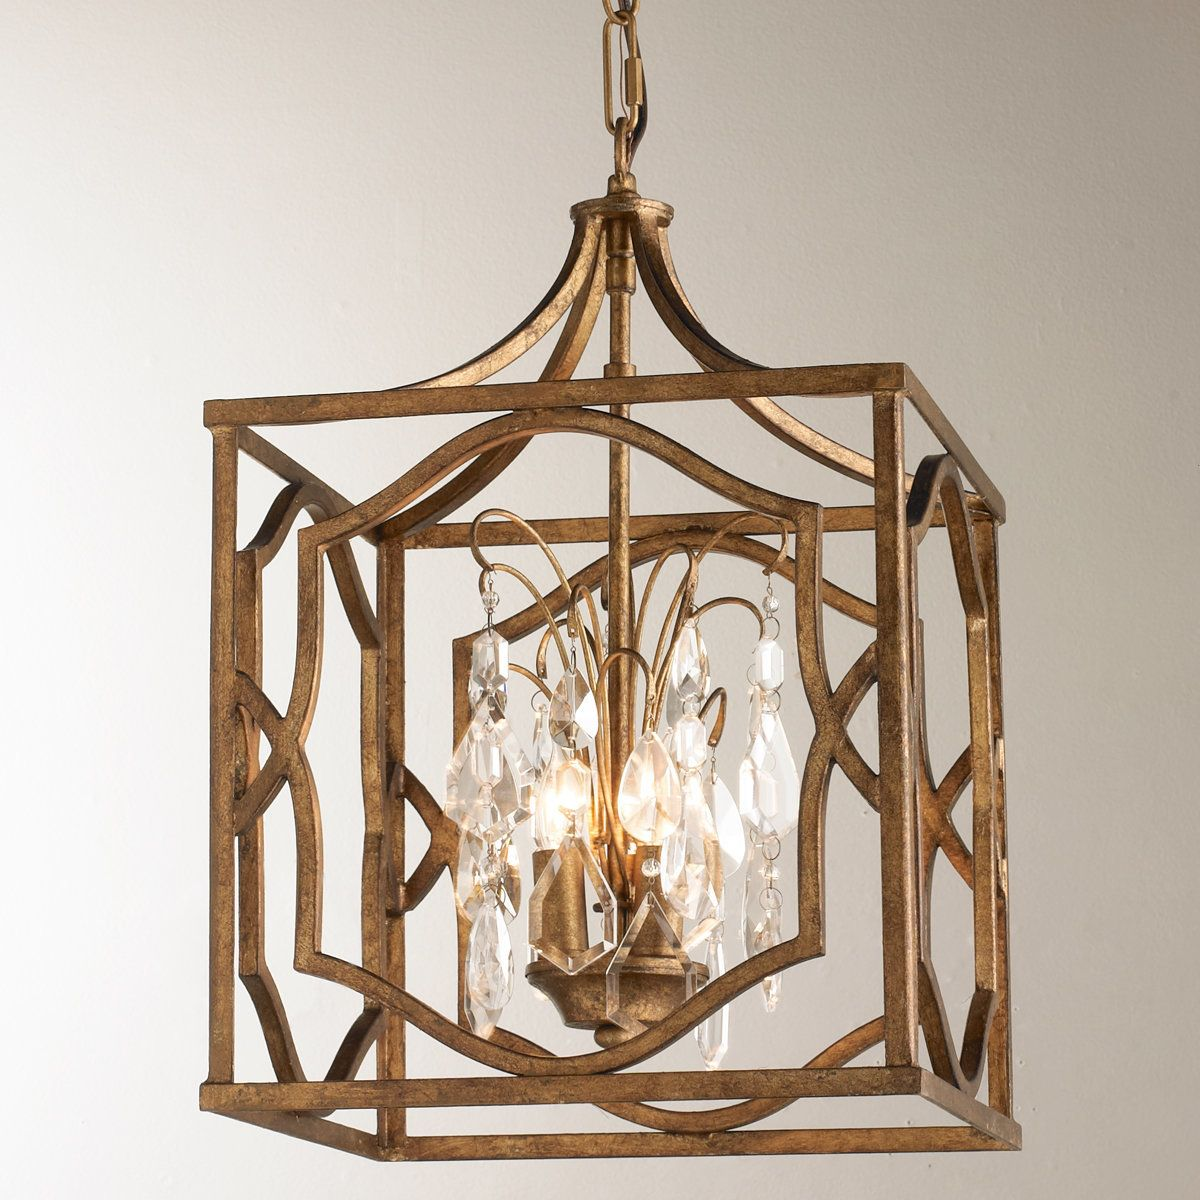 Small modern fretwork frame lantern with crystals antique gold